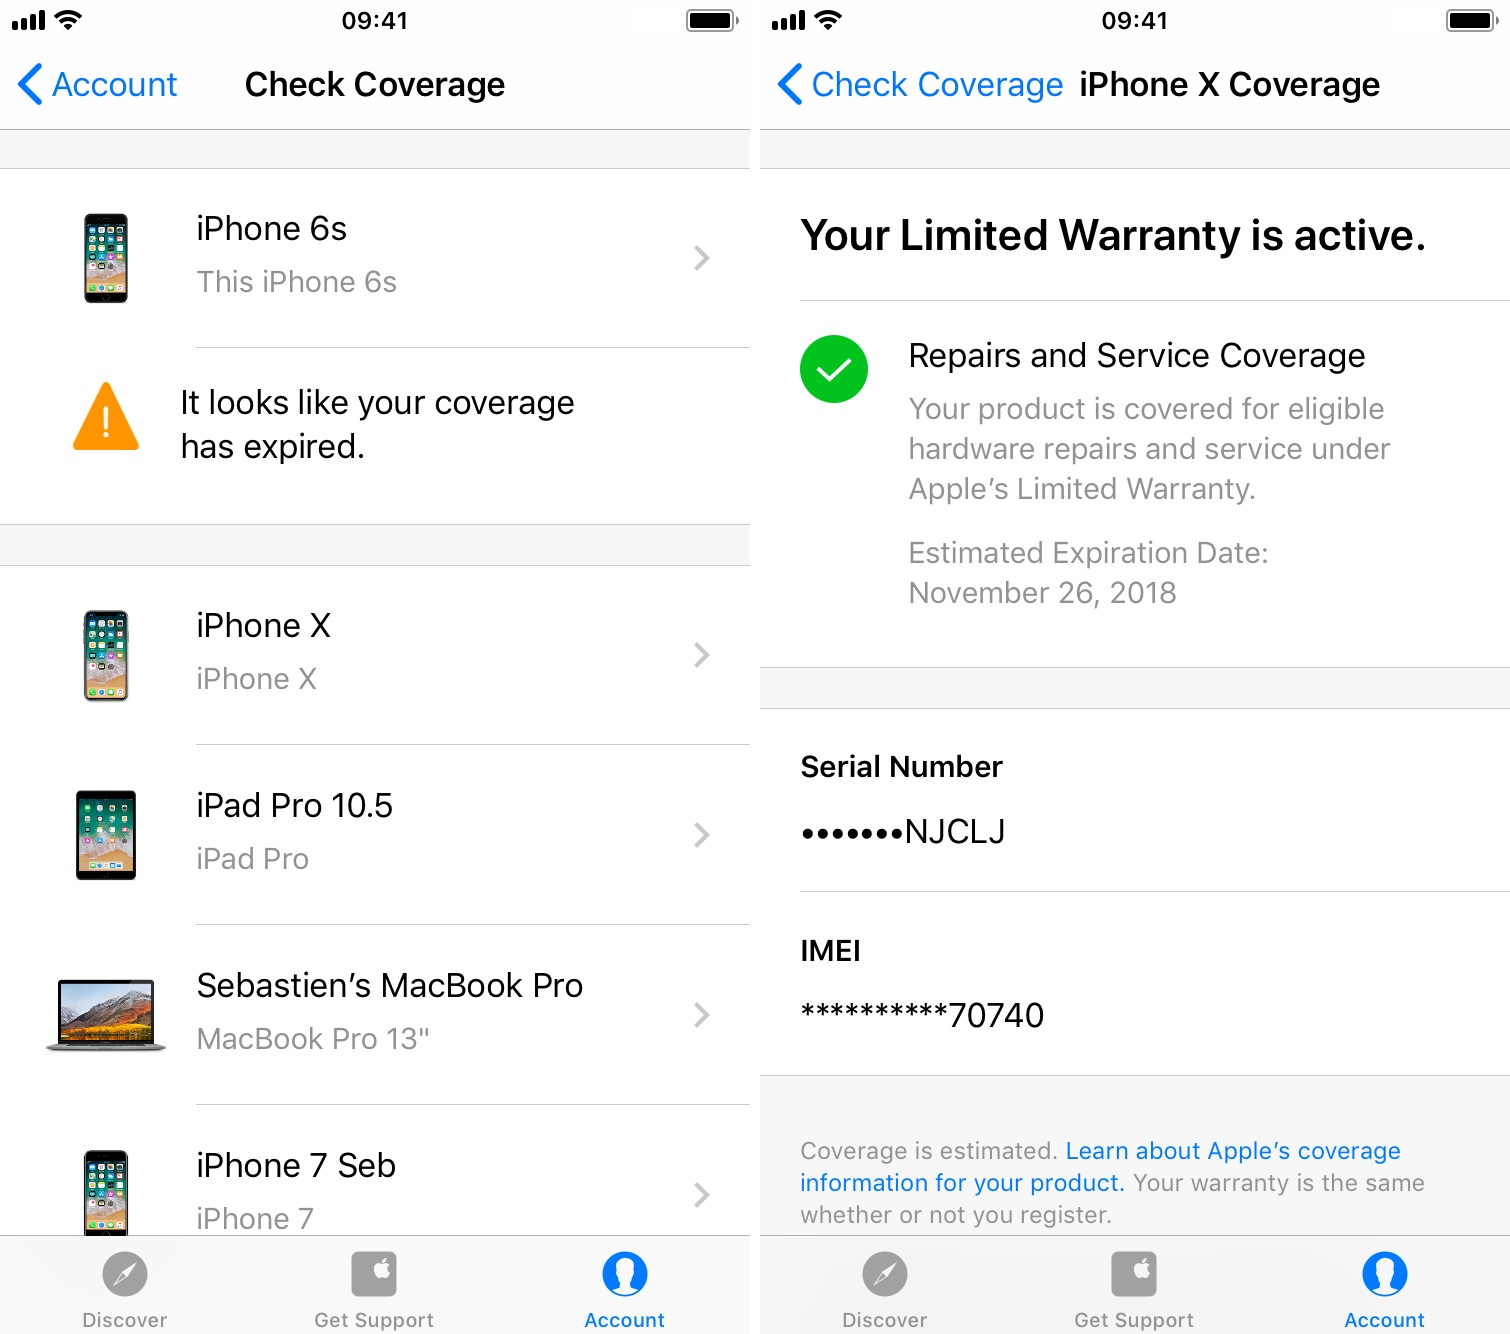 Check warrranty coverage with Apple Support app